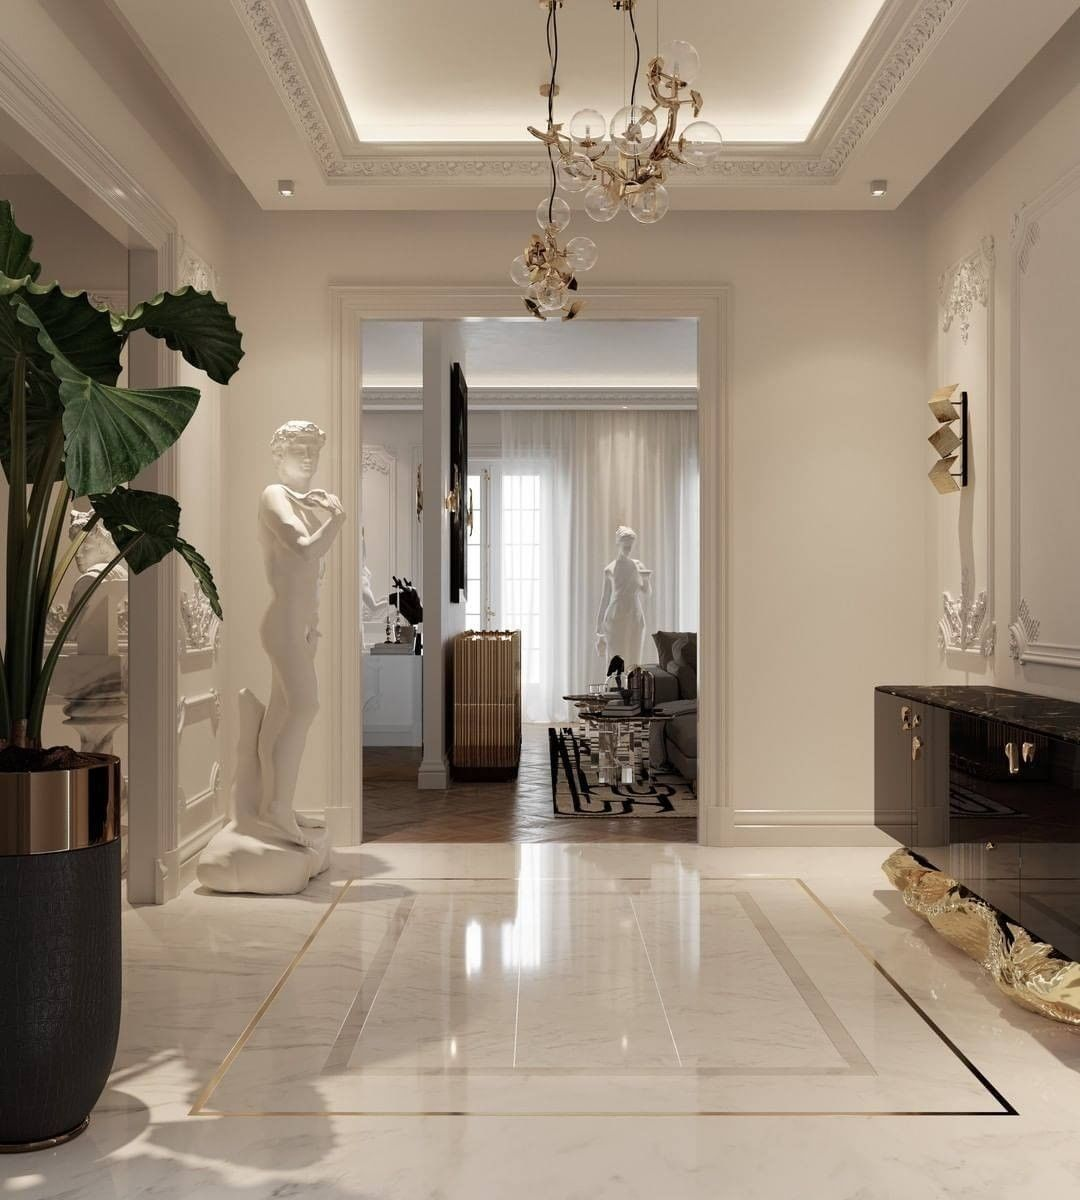 hallway ideas Hallway Ideas To Give Your Guests A Warm Welcome hallway ideas give your guests warm welcome 8